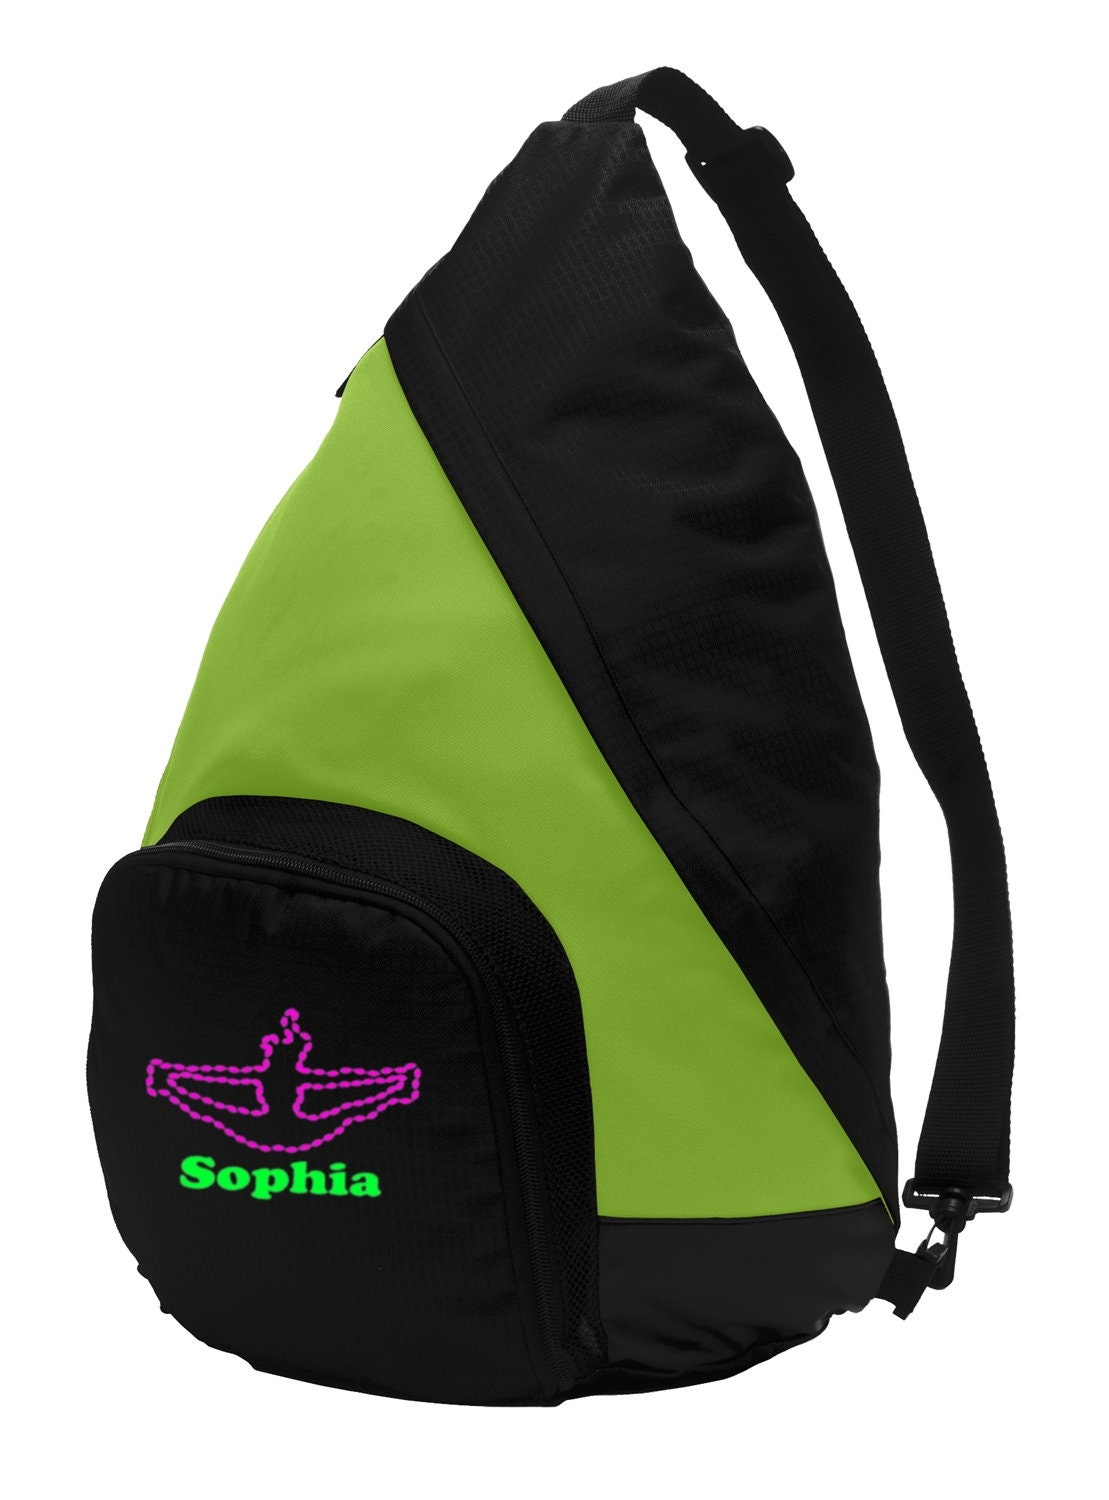 Lime Shock//Black Personalized Tennis Active Gym Duffel Bag with Custom Text Large Sports Bag with Customizable Embroidered Monogram Design